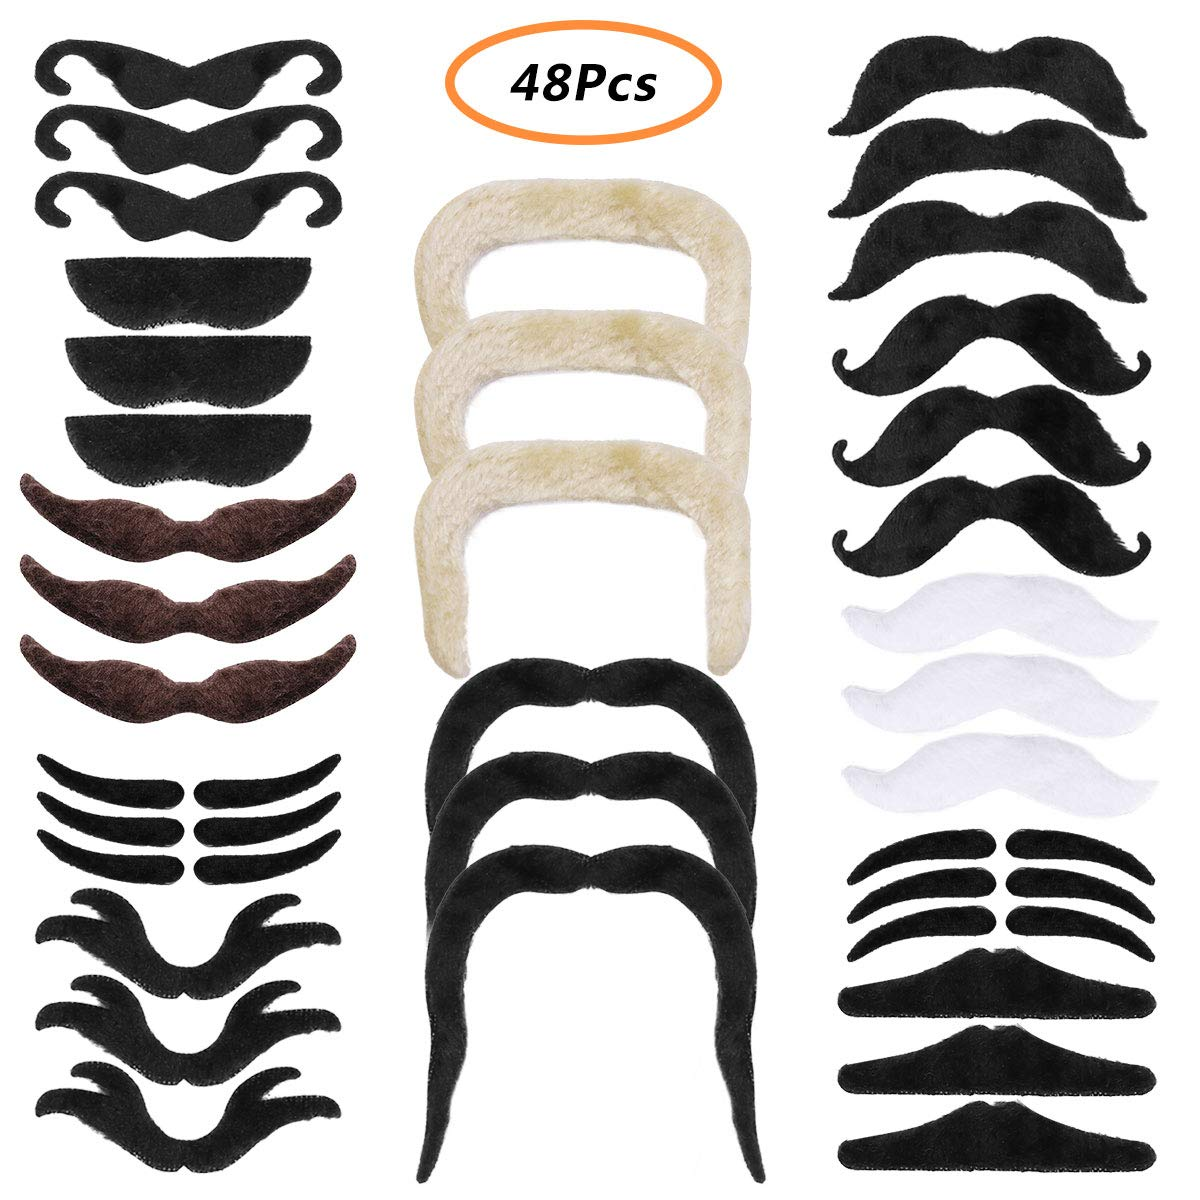 CHICTRY 48 Pcs Novelty Fake Mustaches Self Adhesive Fake Beards Party Decorations